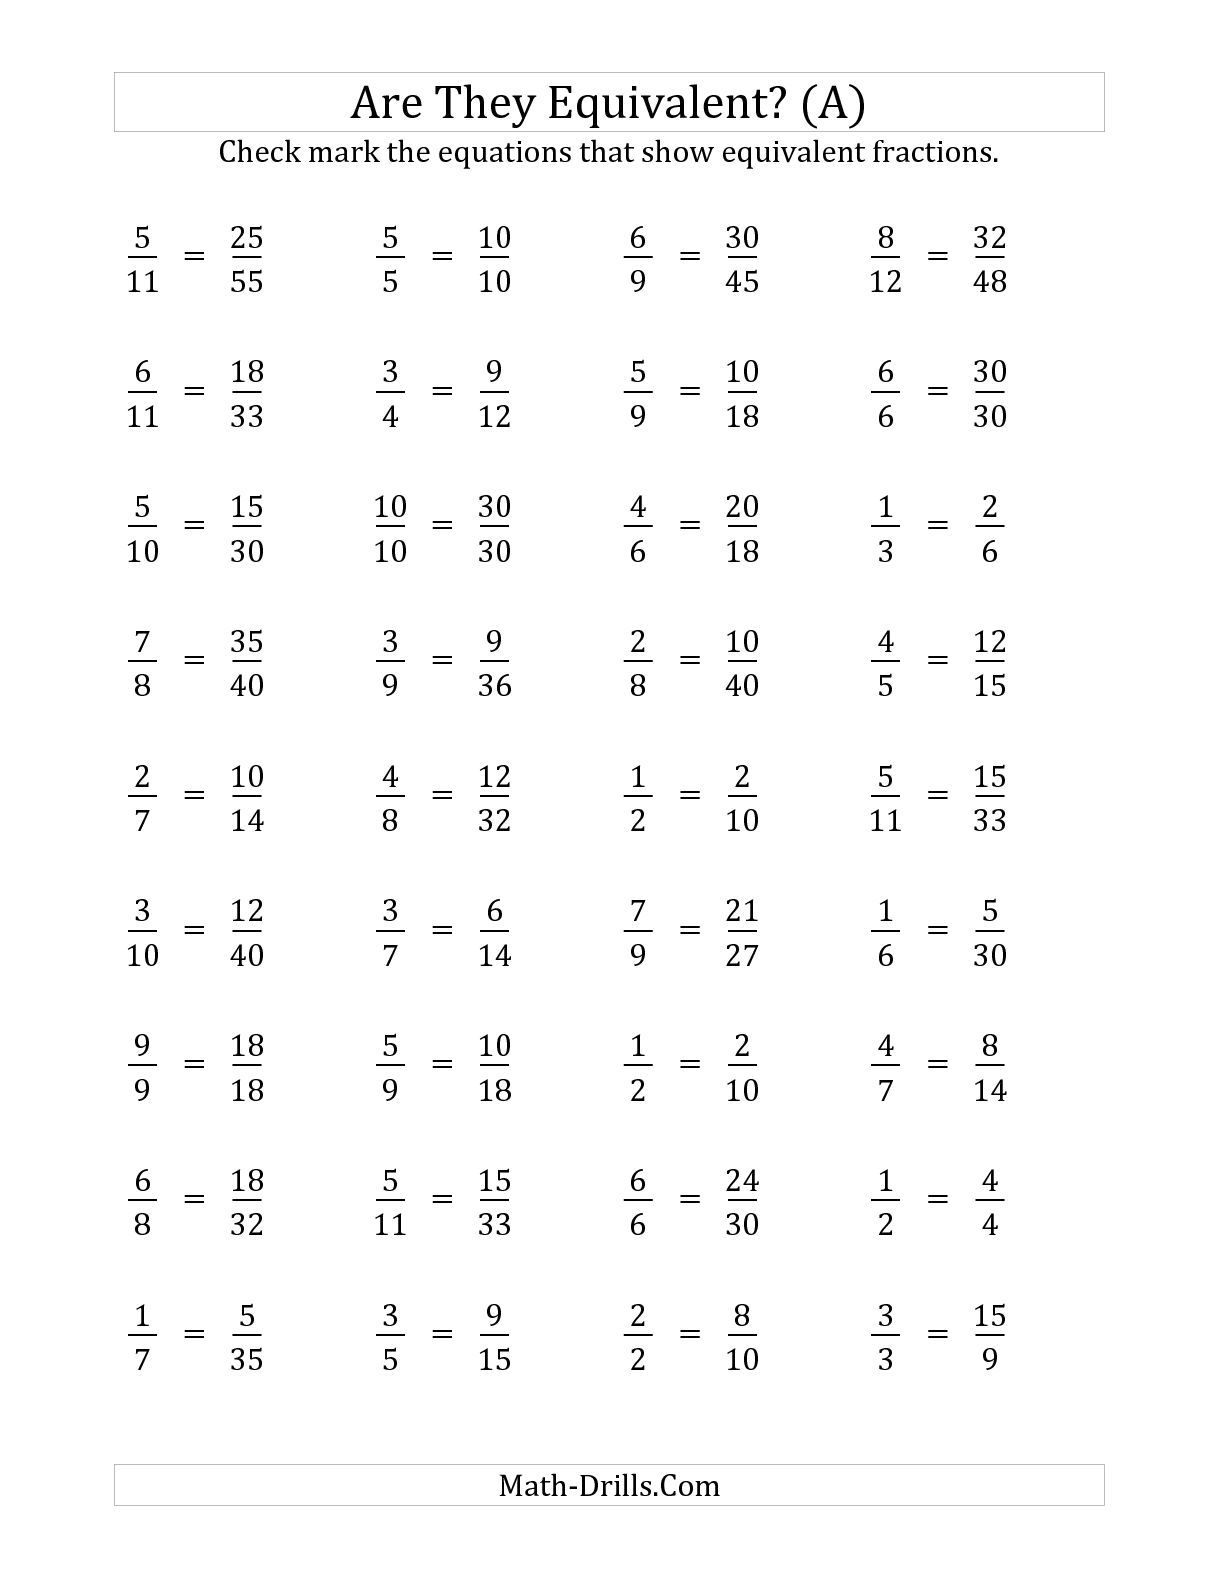 worksheet Math Fraction Worksheet the are these fractions equivalent multiplier range 2 to 5 a worksheetsmath